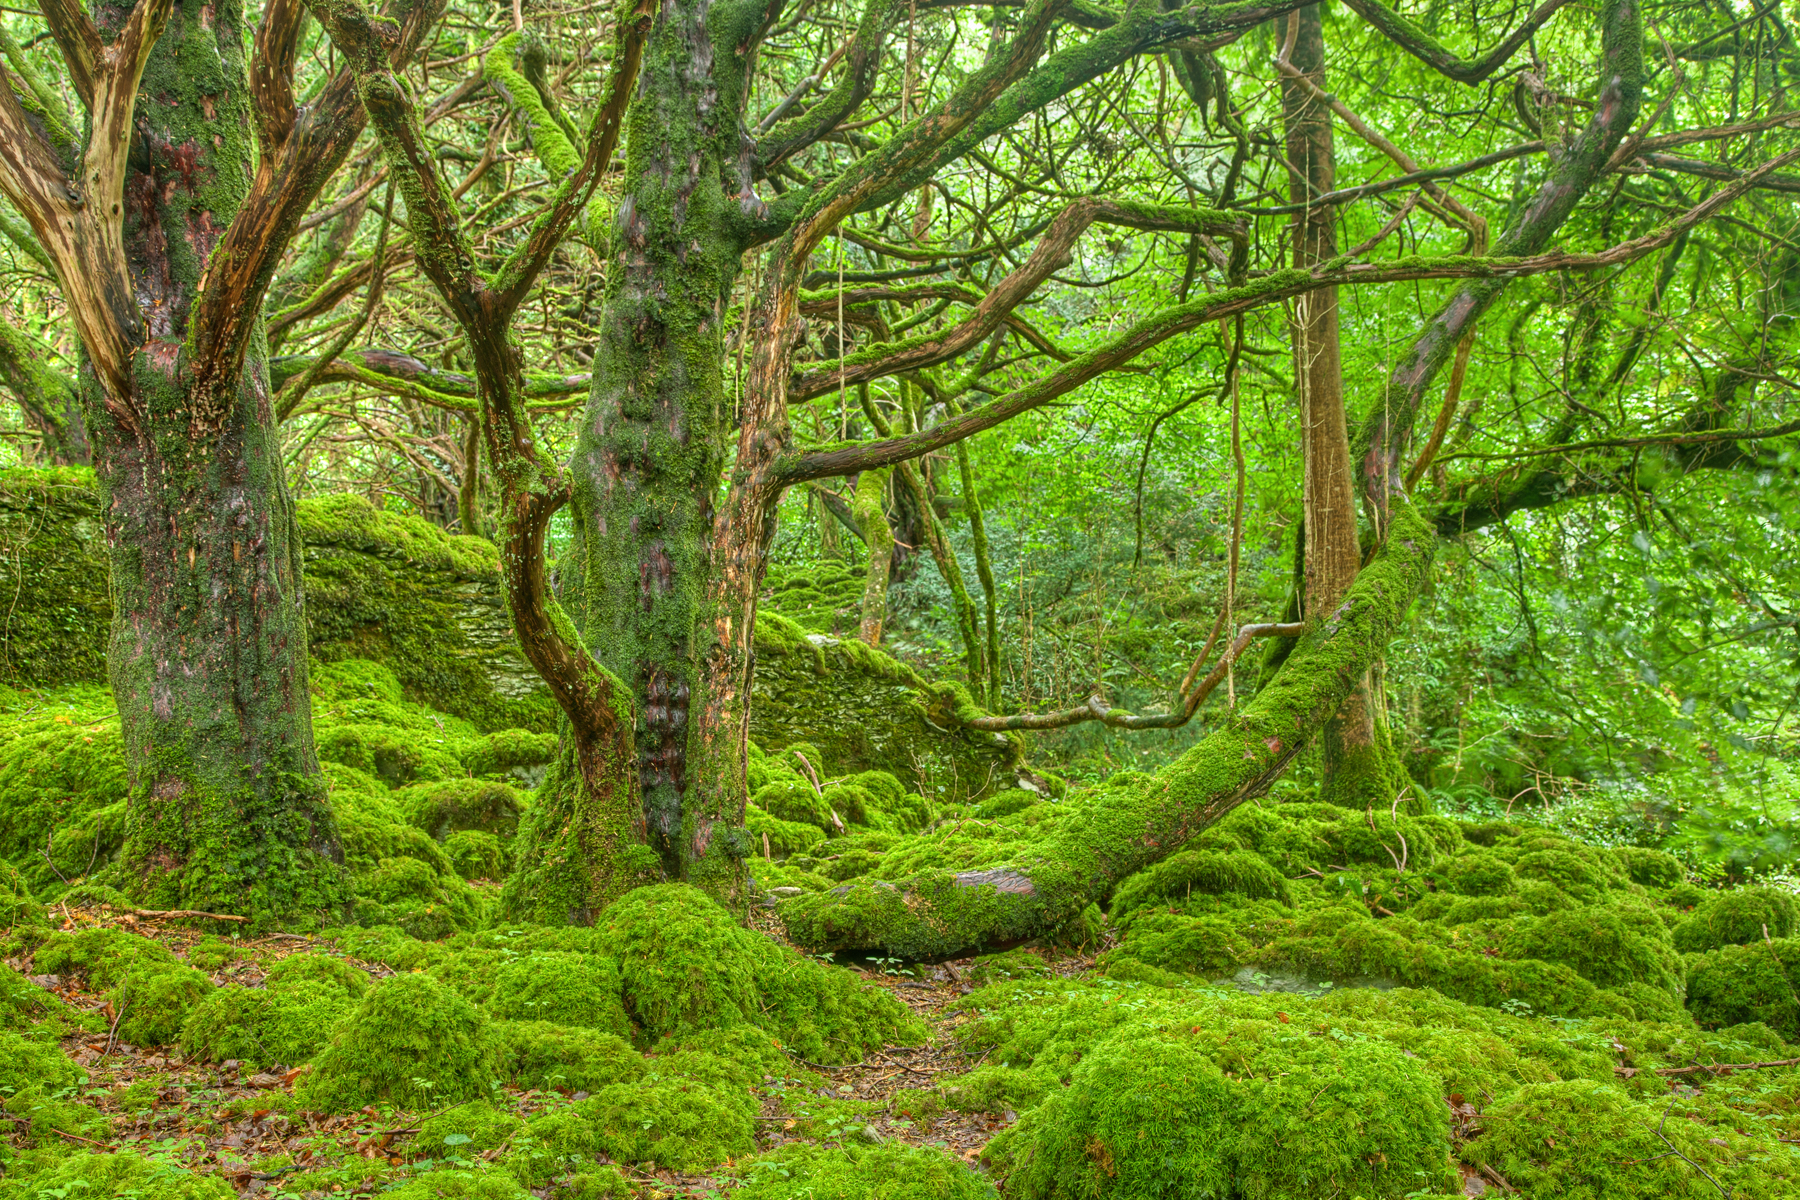 stockvault-killarney-forest—hdr135440